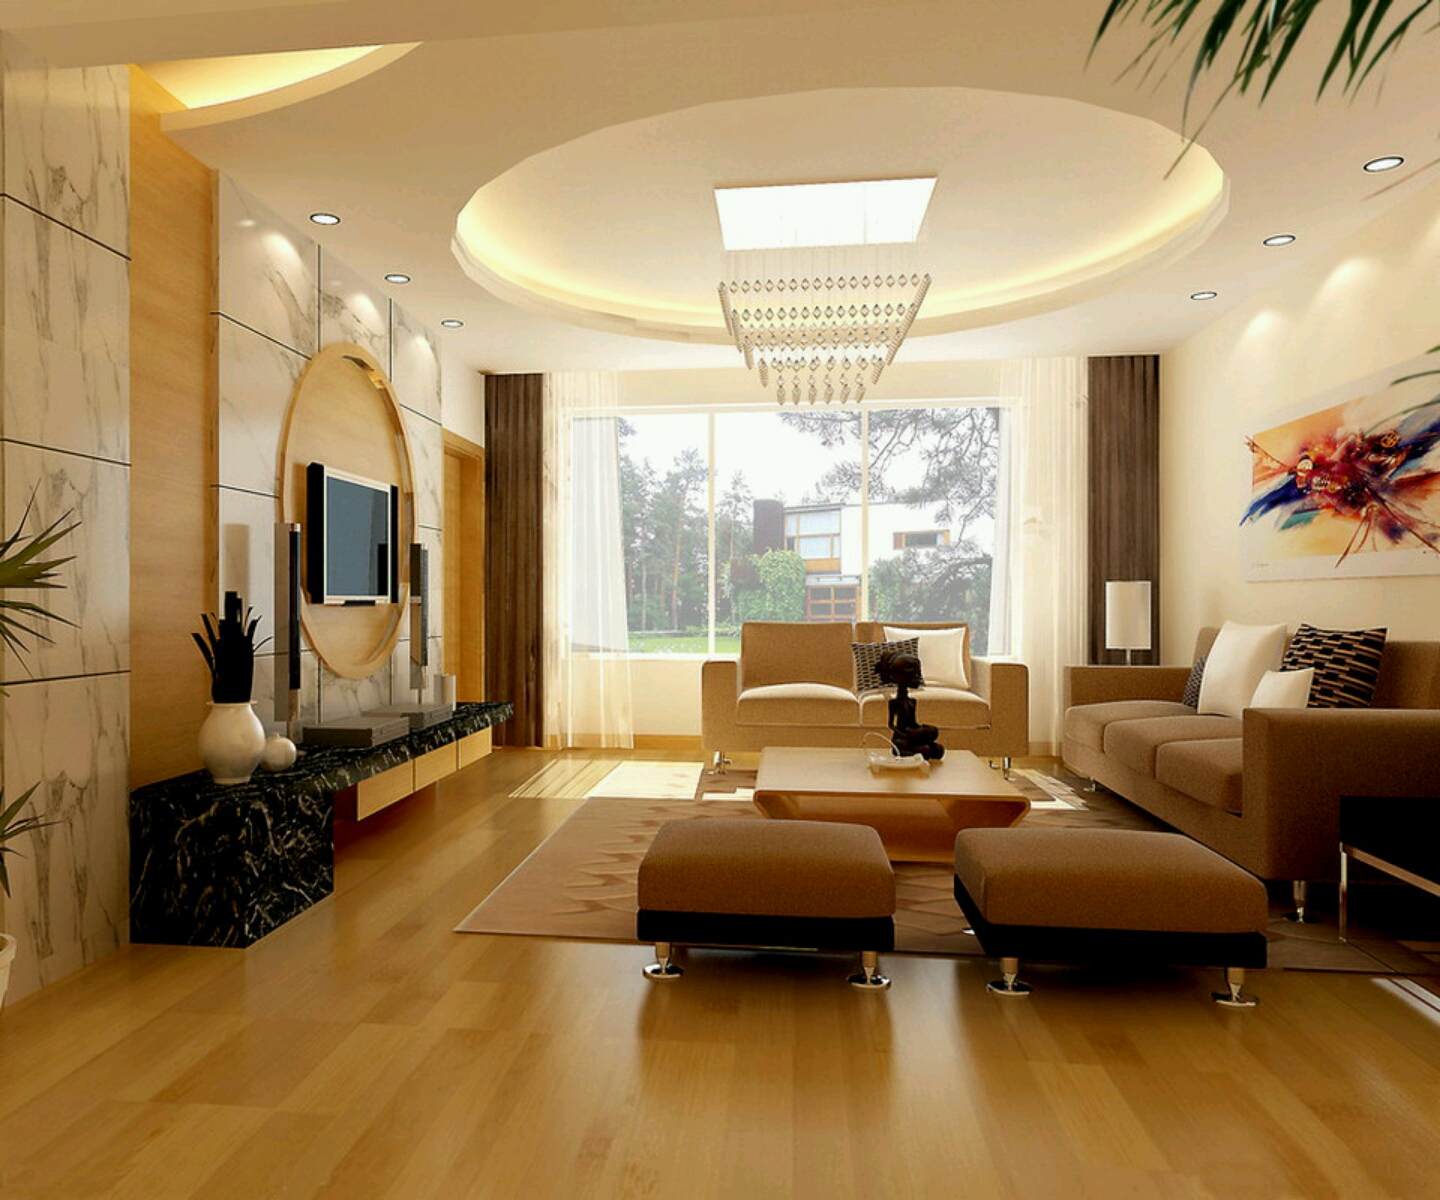 Modern interior decoration living rooms ceiling designs for Decoration ideas living room